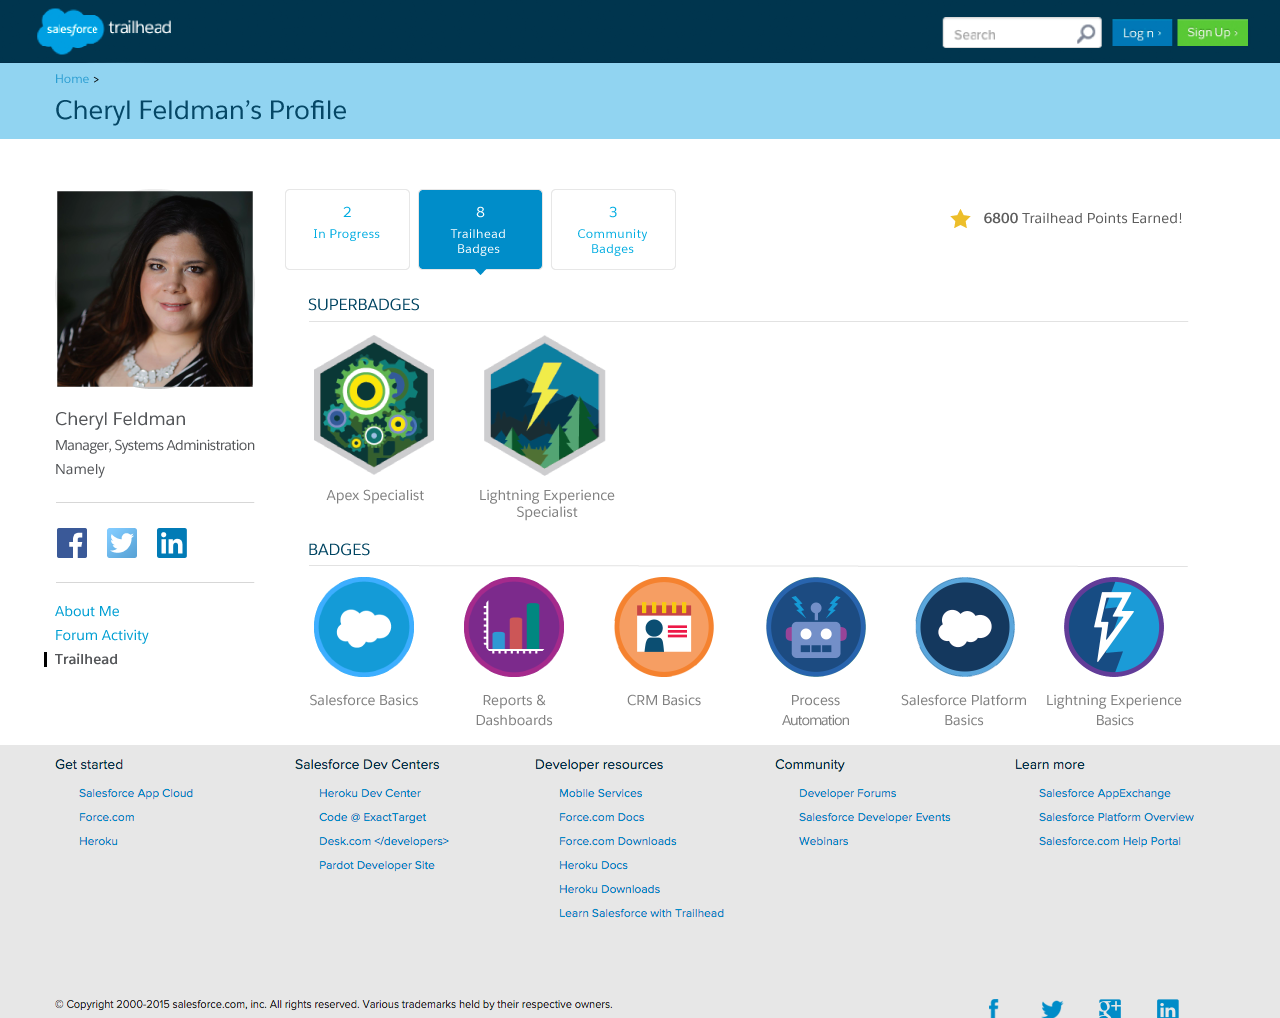 Salesforce's Trailhead program includes a profile featuring superbadges.